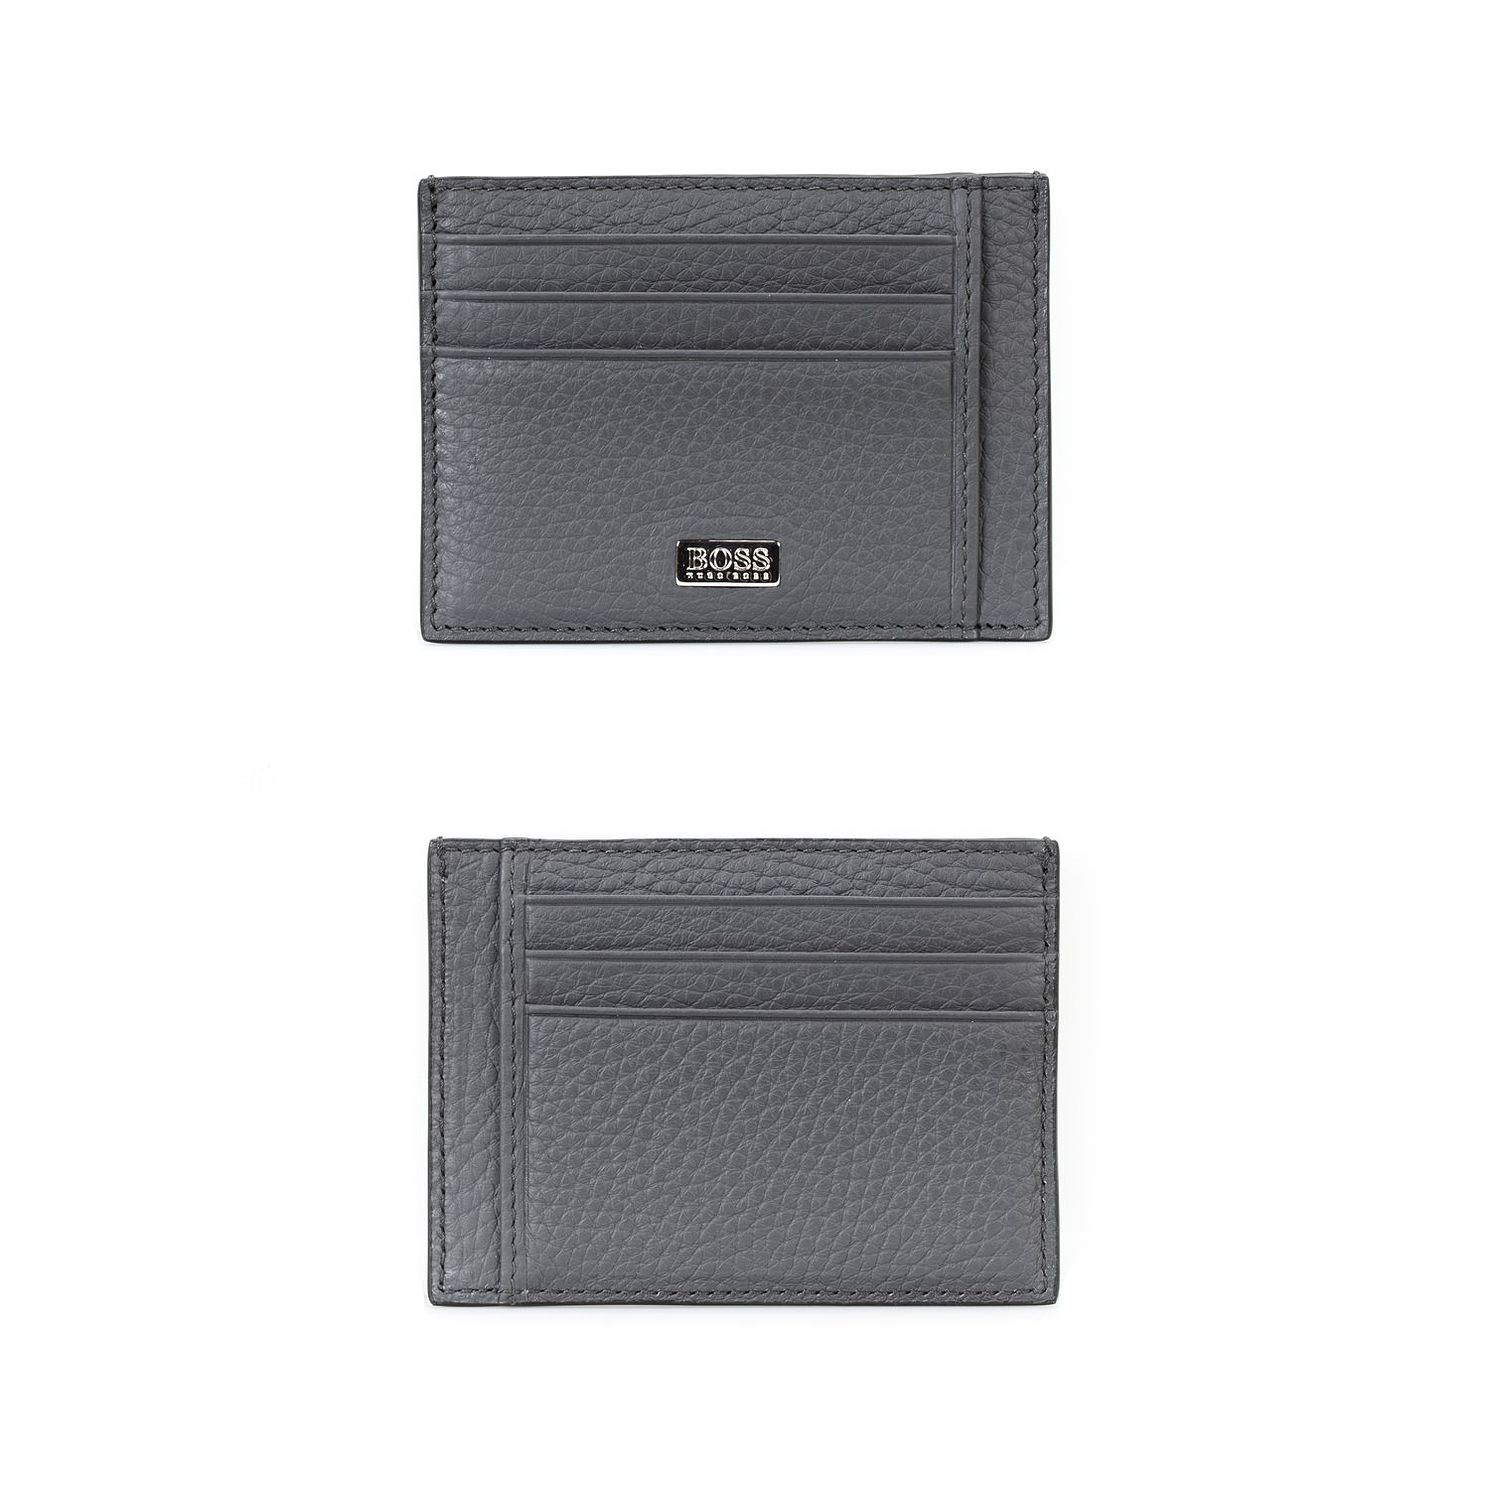 BOSS Crosstown Men's Grey Leather Cardholder - Product number 4813472